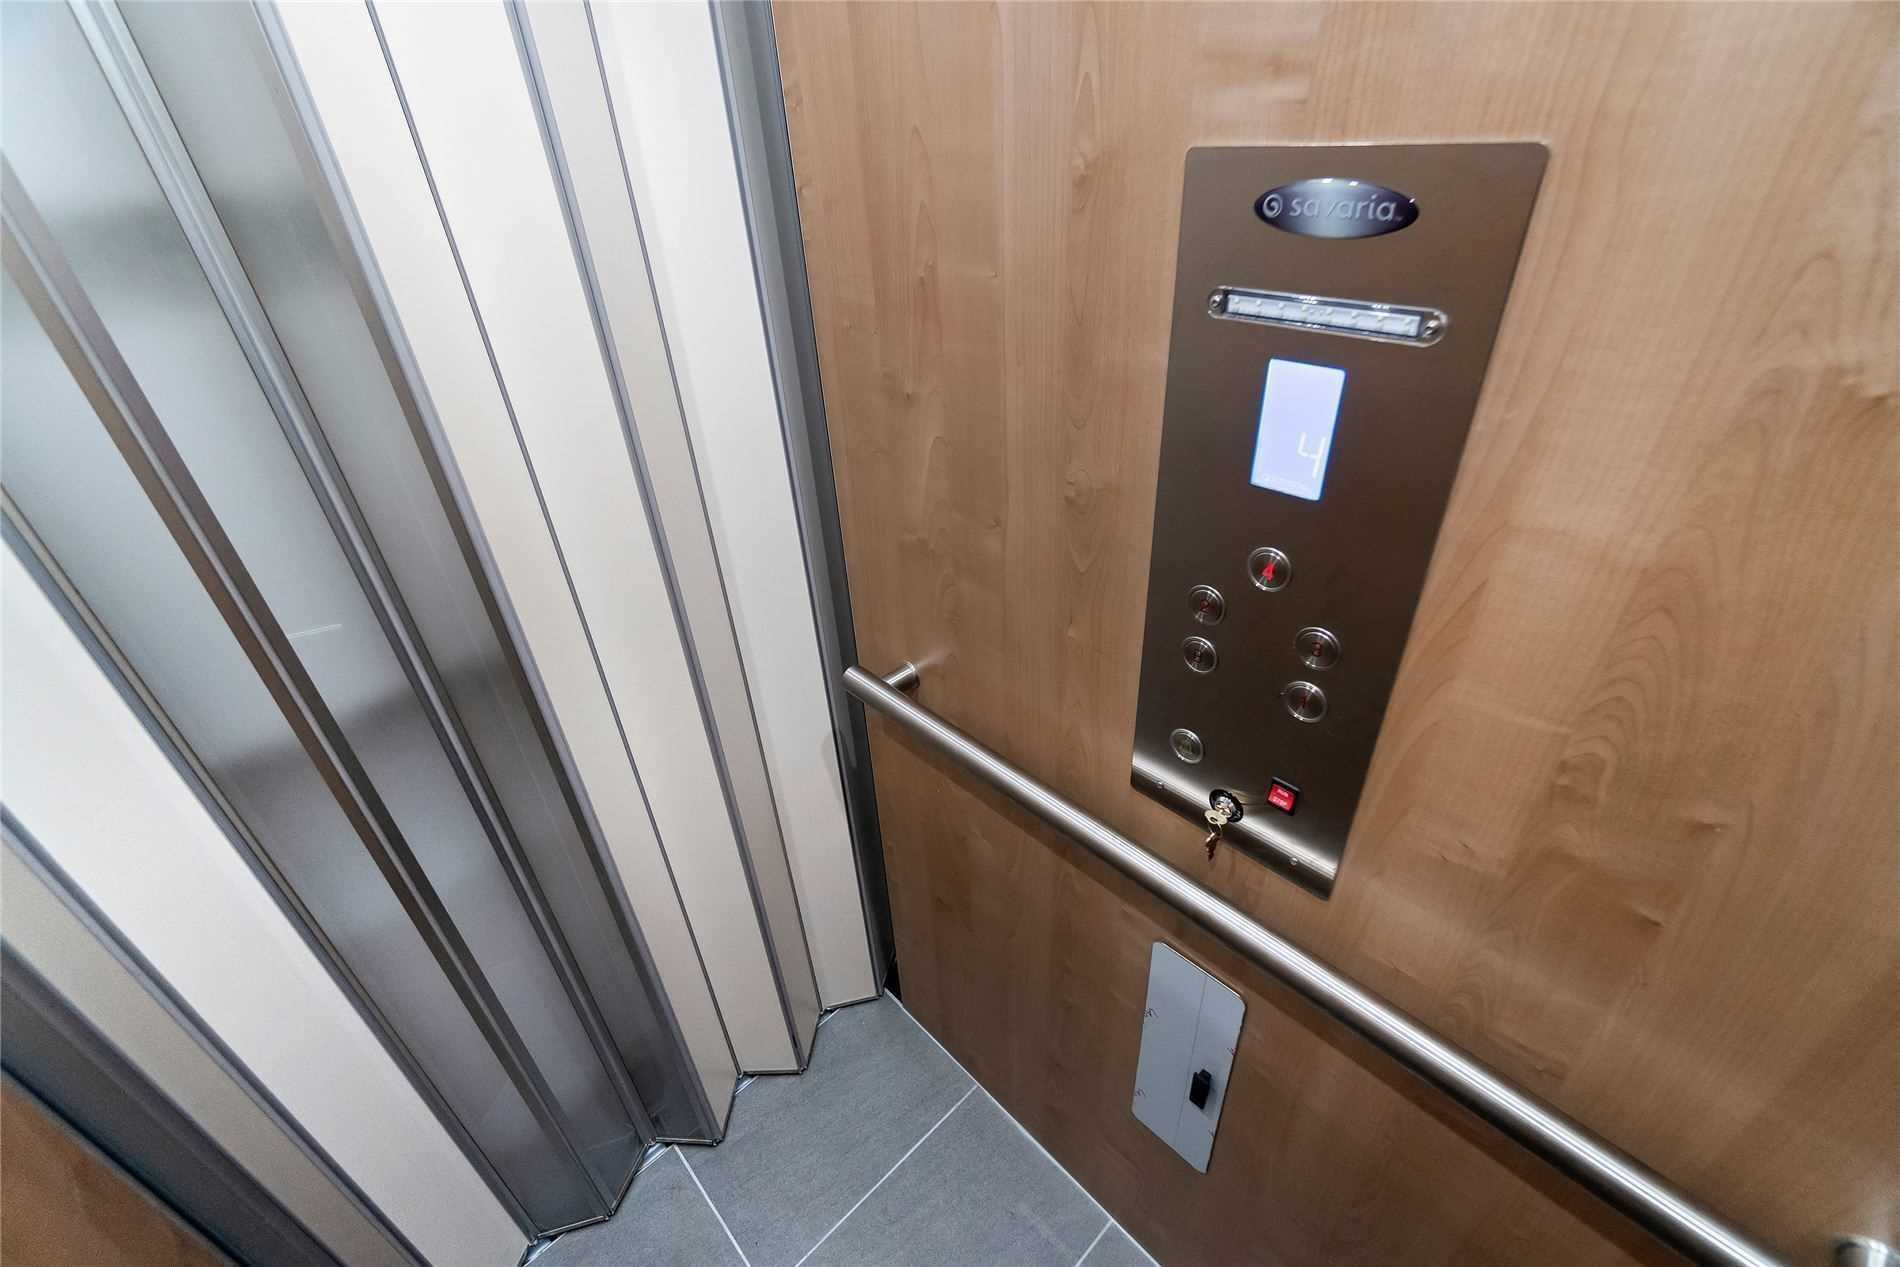 Condo Townhouse For Sale In Toronto , 3 Bedrooms Bedrooms, ,4 BathroomsBathrooms,Condo Townhouse,For Sale,Th1,St Mary